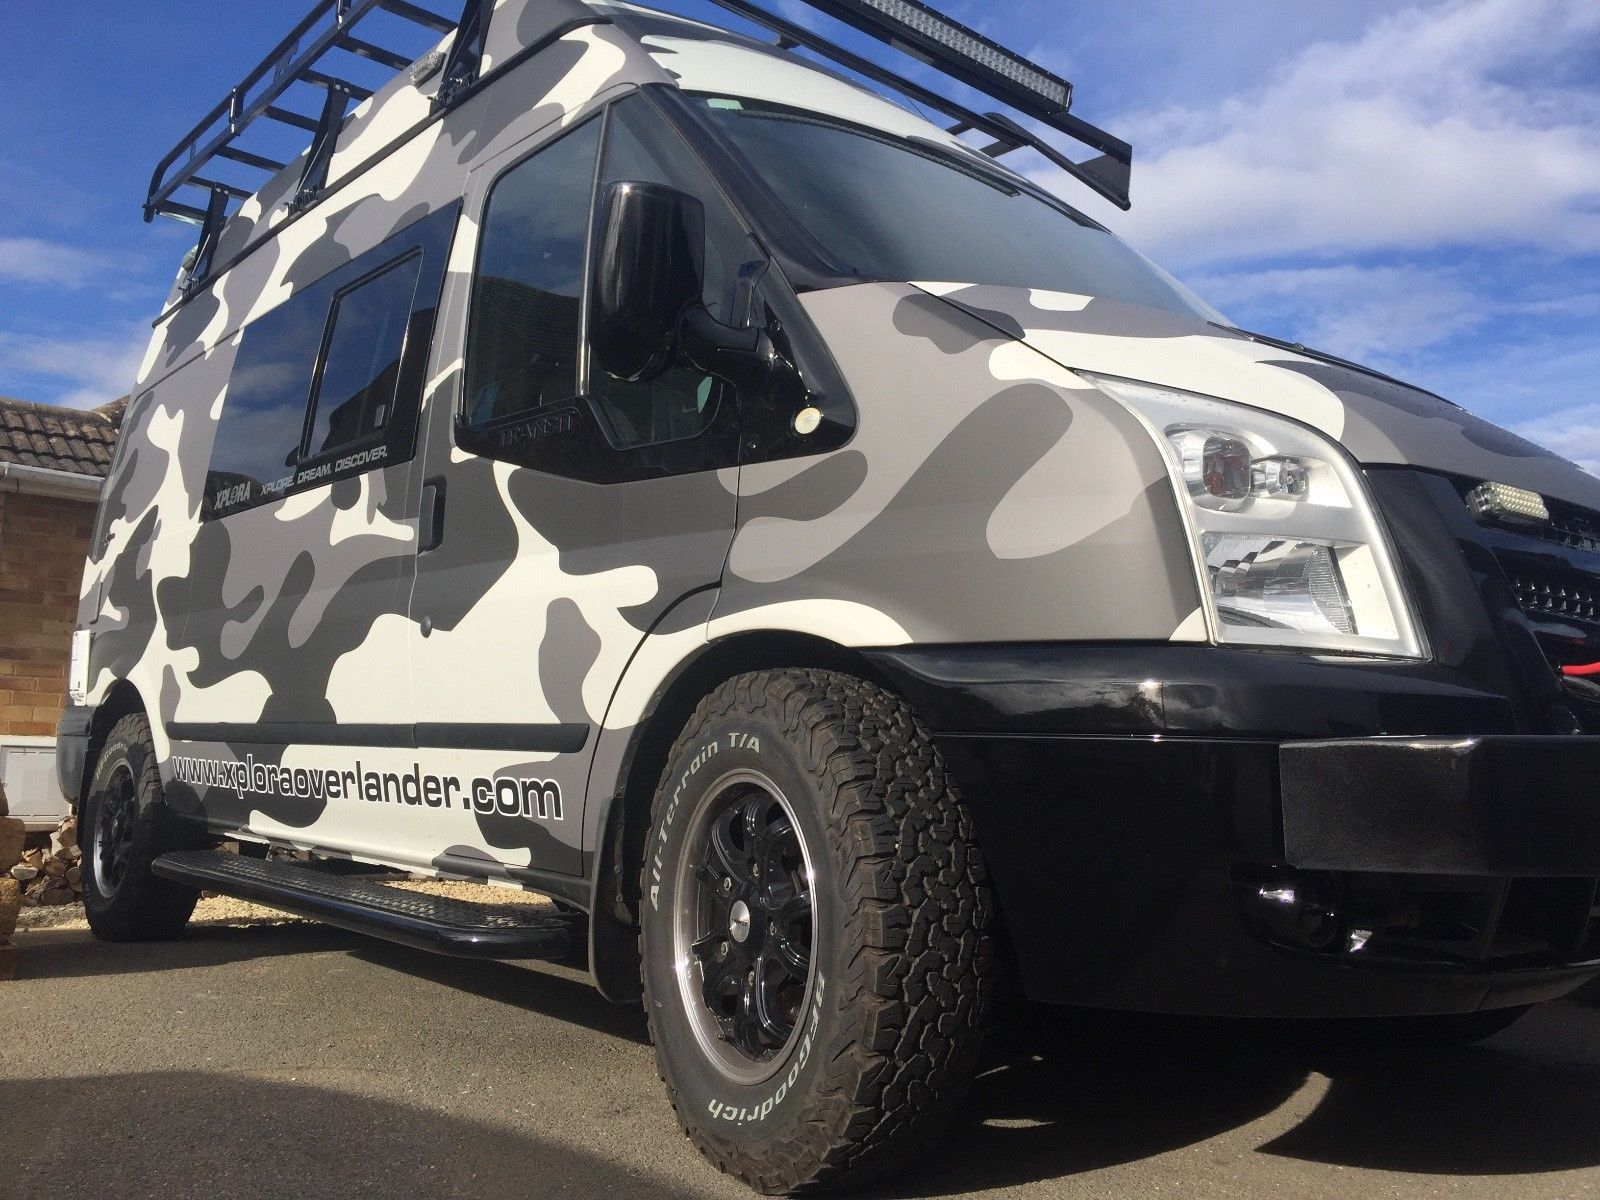 Coolest 4x4 camper around here we have for sale one of the most amazing camper vans we have ever seen seriously kitted out too many things to list